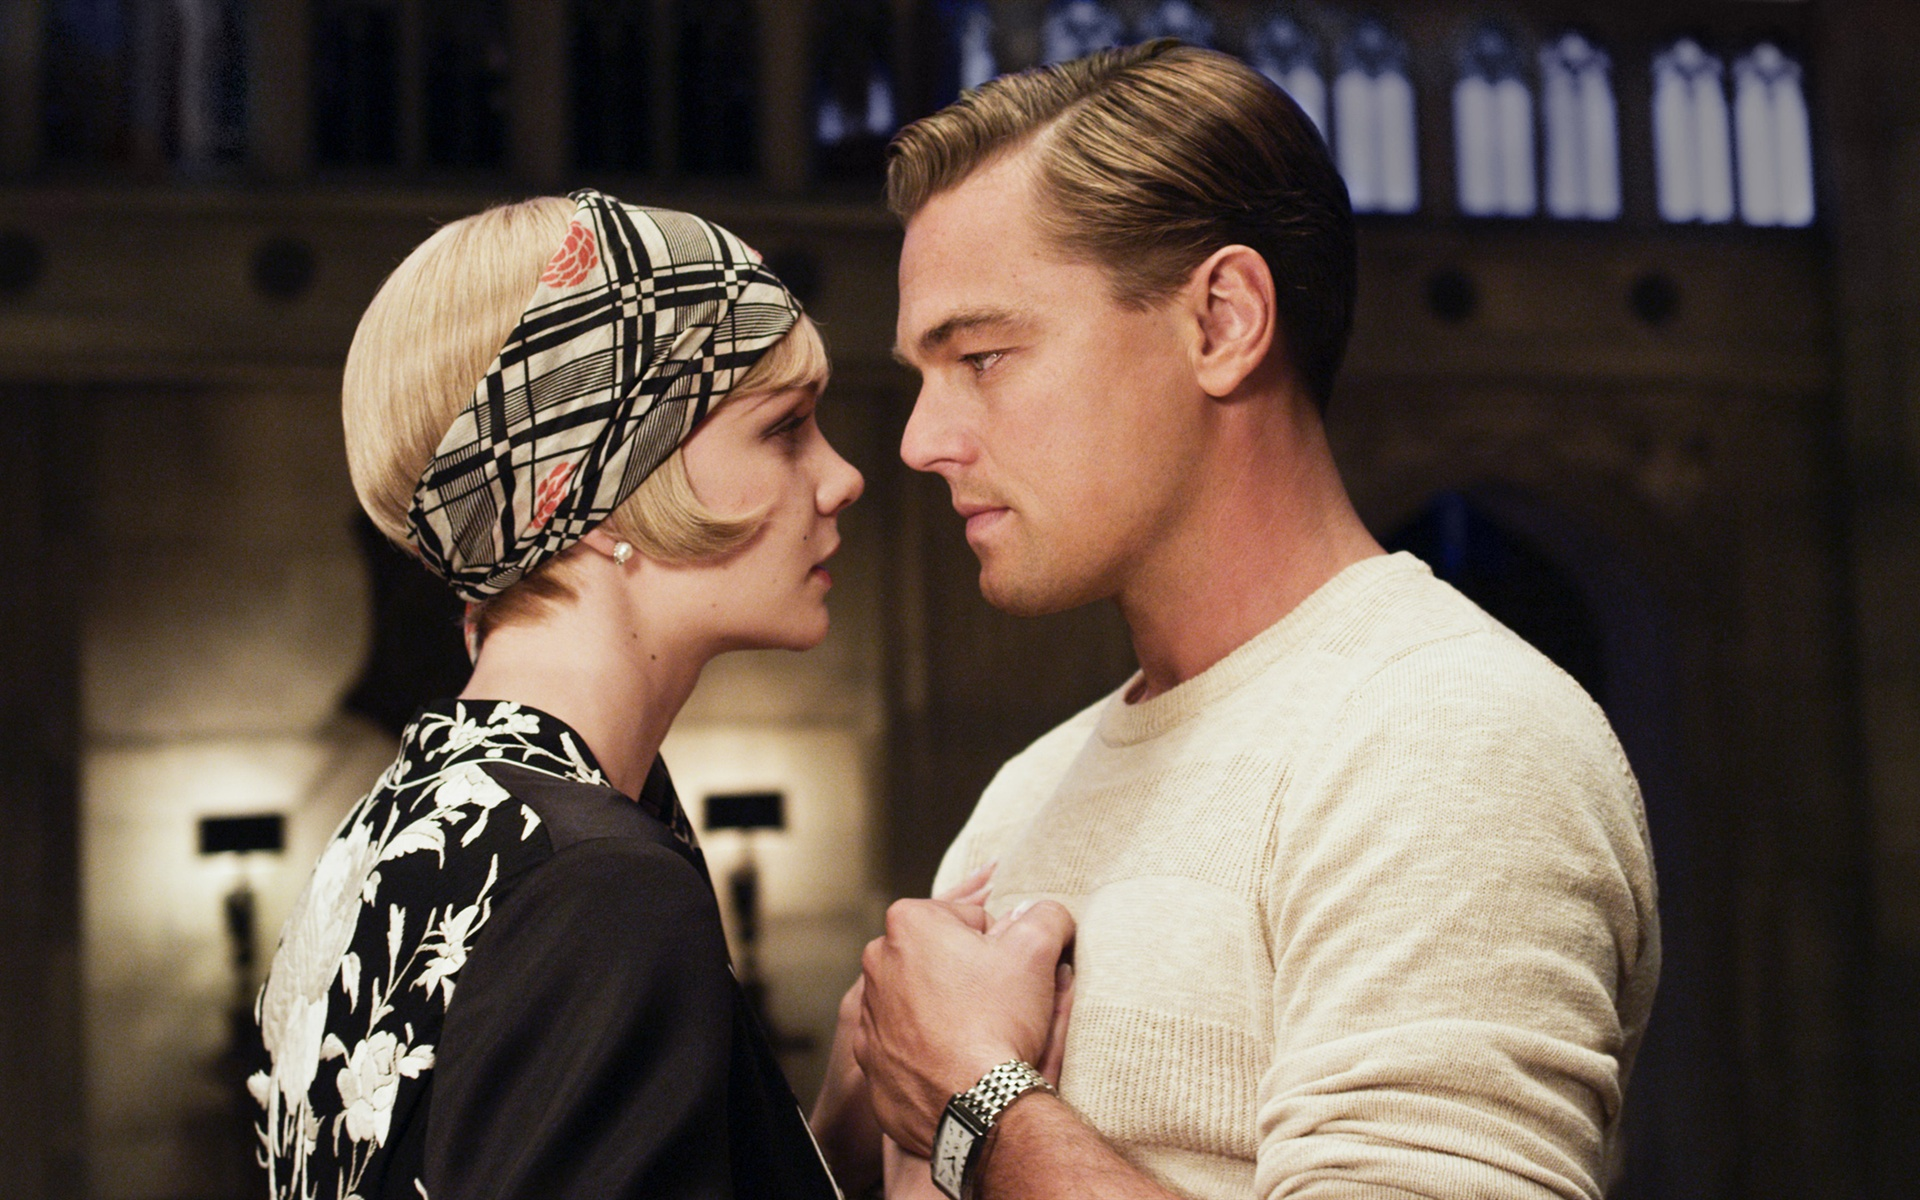 Costumes by miuccia prada and catherine martin for the great gatsby